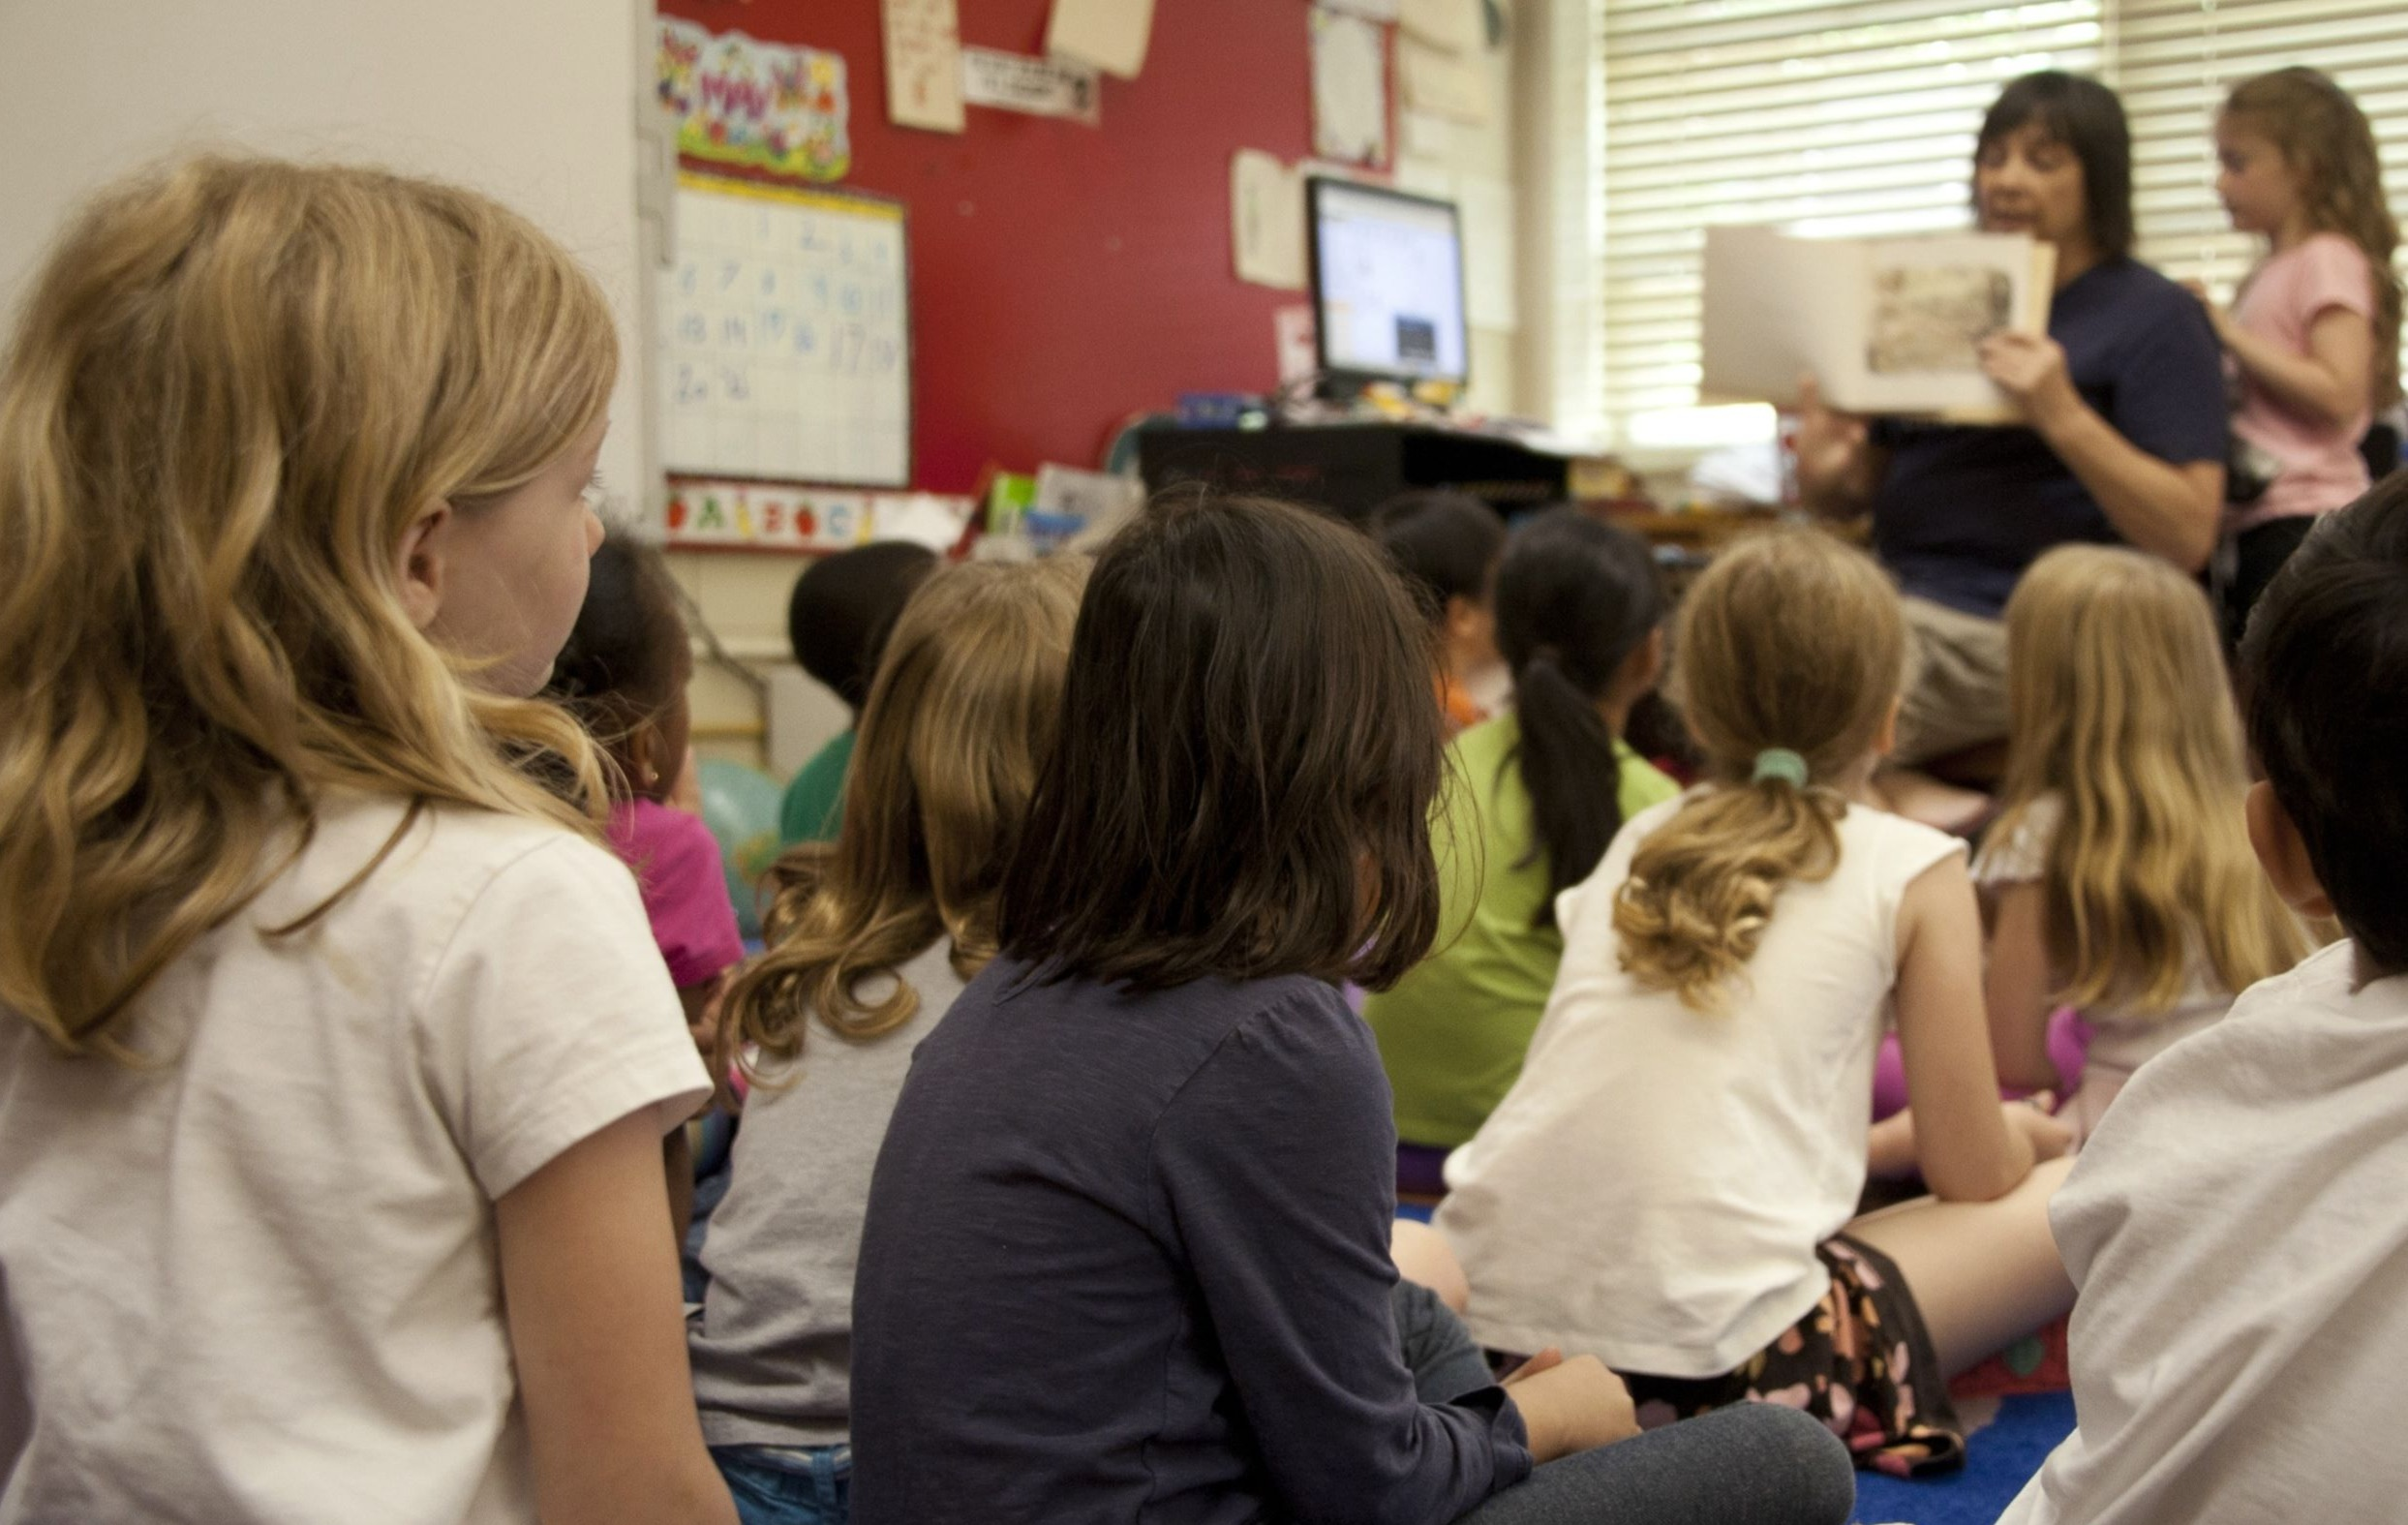 Is Retaining Students in the Early Grades Self-Defeating?